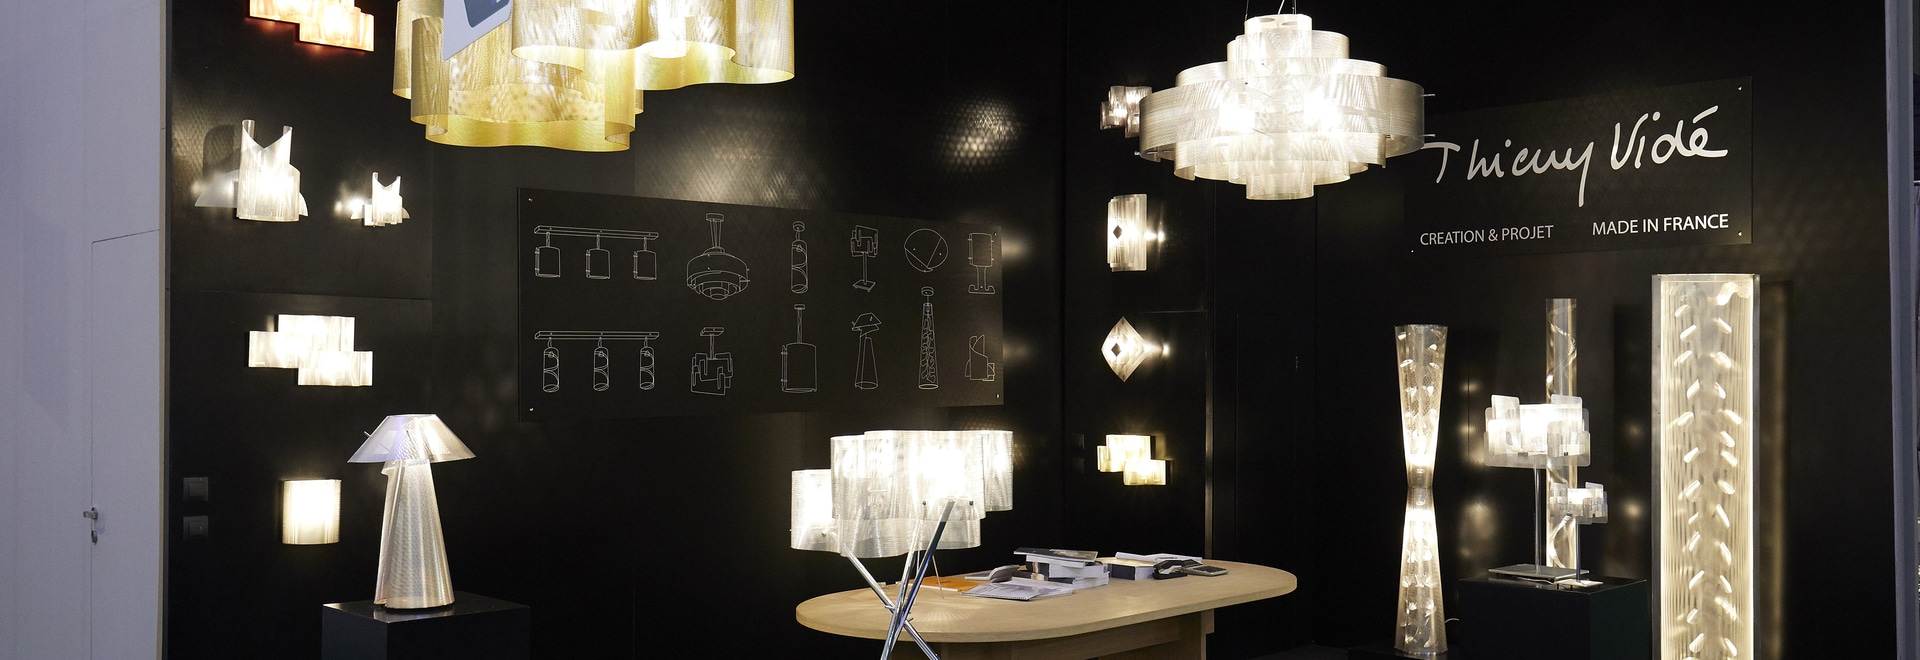 Thierry Vidé Design will be at Maison & Objet fair 19-23 january